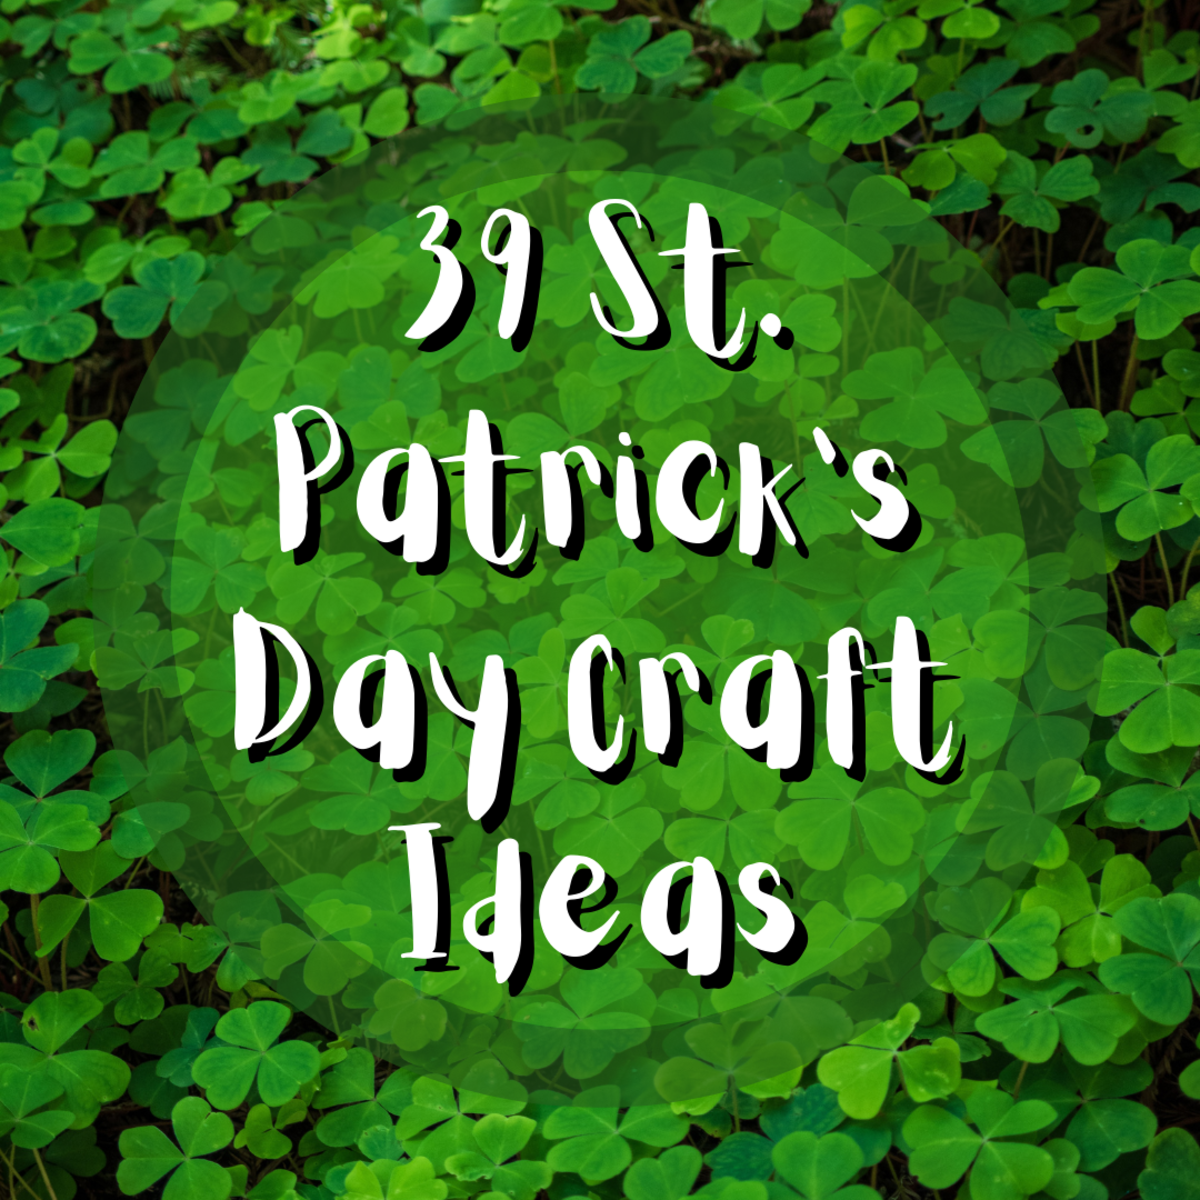 Find a plethora of incredible St. Patrick's Day crafts for adults and kids! Everything from jewelry to suncatchers!